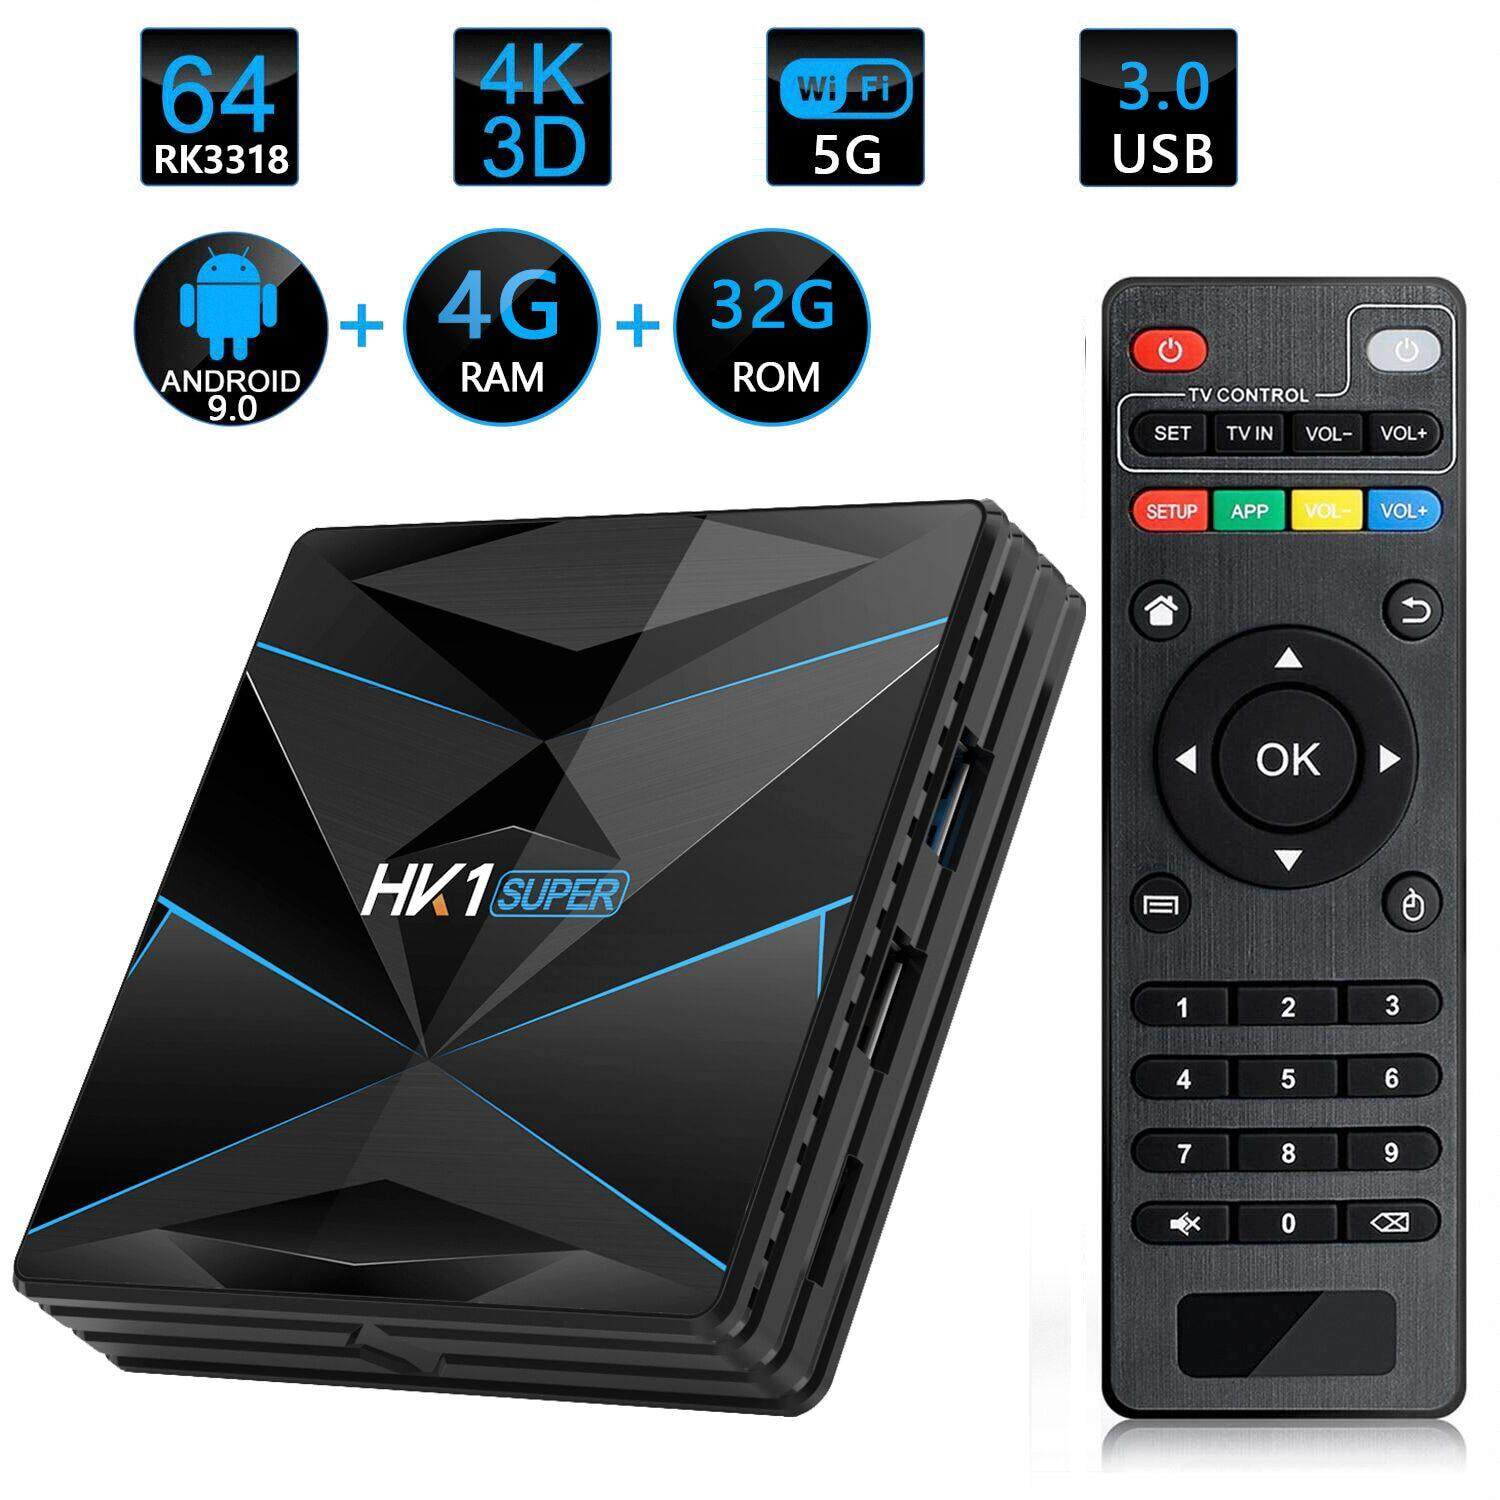 ยี่ห้อนี้ดีไหม  ปัตตานี 【HK1 Super】 Android 9 0 Smart TV BOX Google asistente RK3318 4K 3D Ultra HD 4G 64G TV wifi Play Store Apps gratis rápido Set top Box